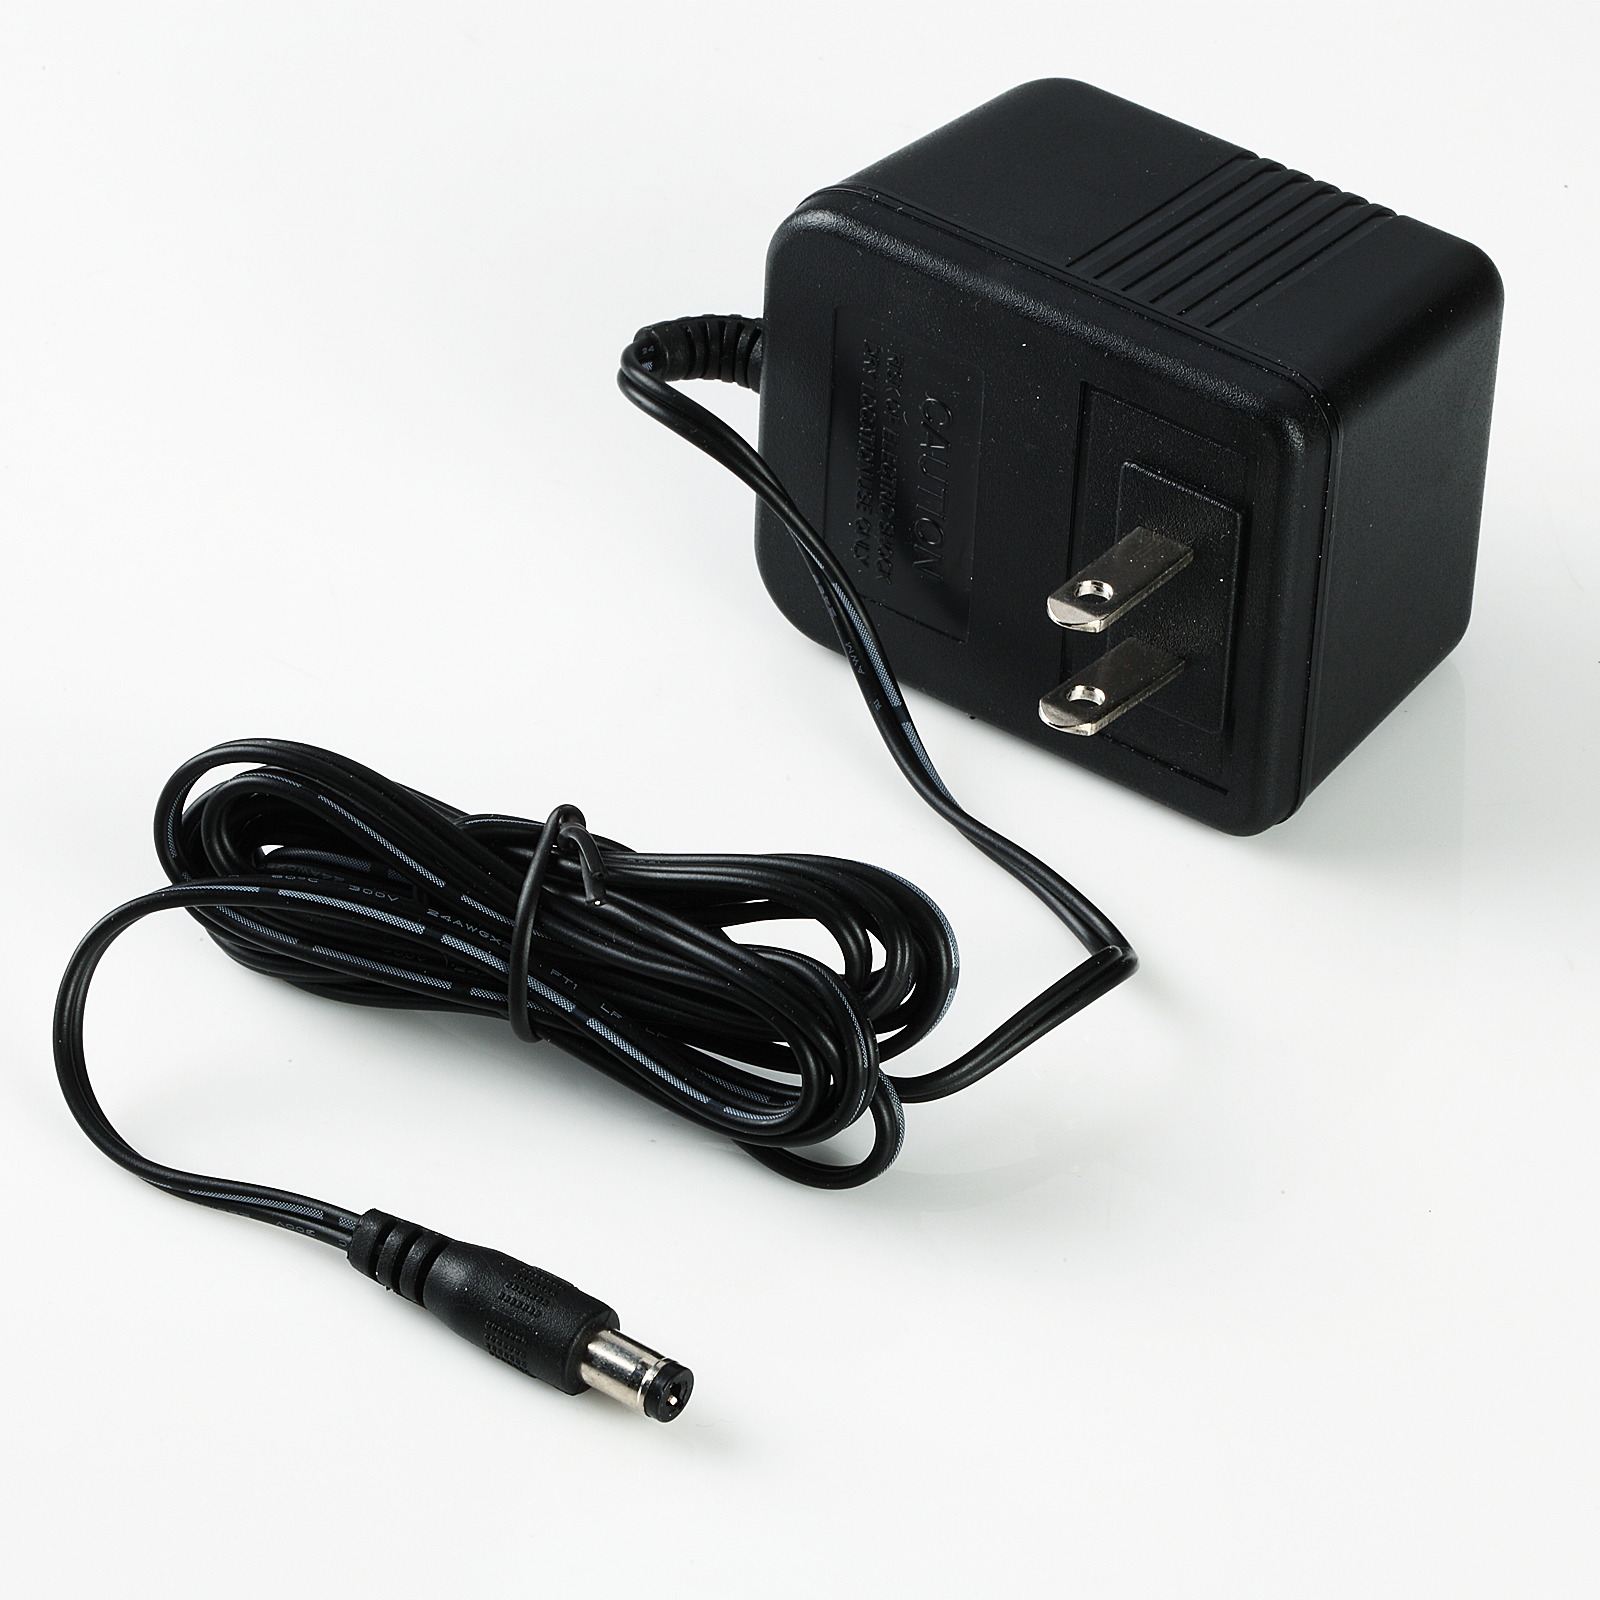 AC Adapter For IR Remote Repeater XN-CB4 12V 500MA Power Supply 6ft Cable